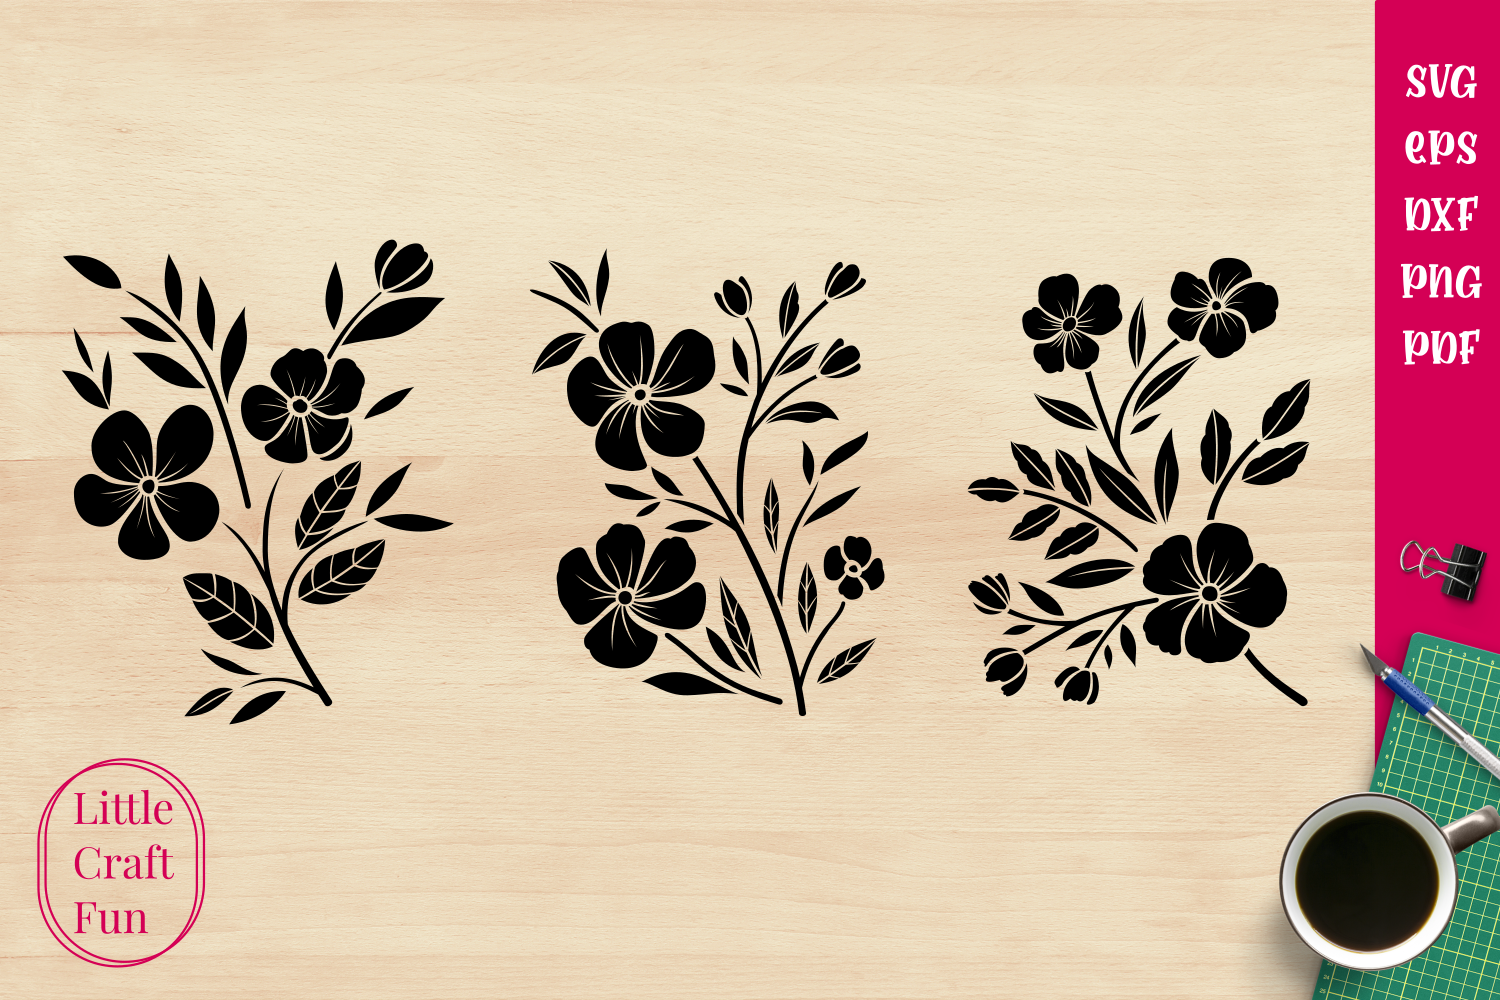 Flowers Silhouette Graphic By Little Craft Fun Creative Fabrica